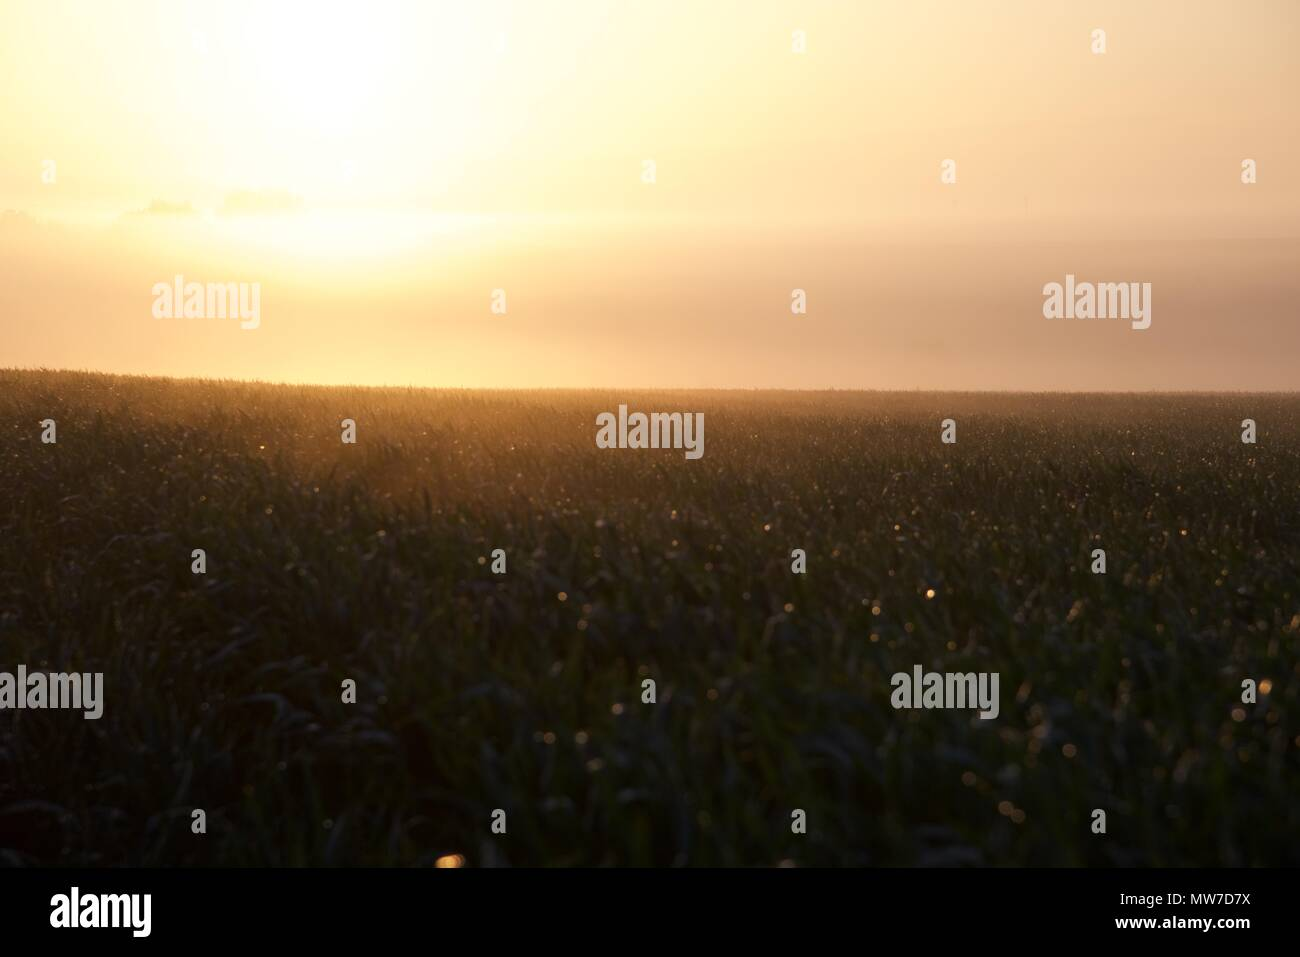 Mist: the rising sun starts to burn off the early morning mist over a field of growing wheat - Stock Image